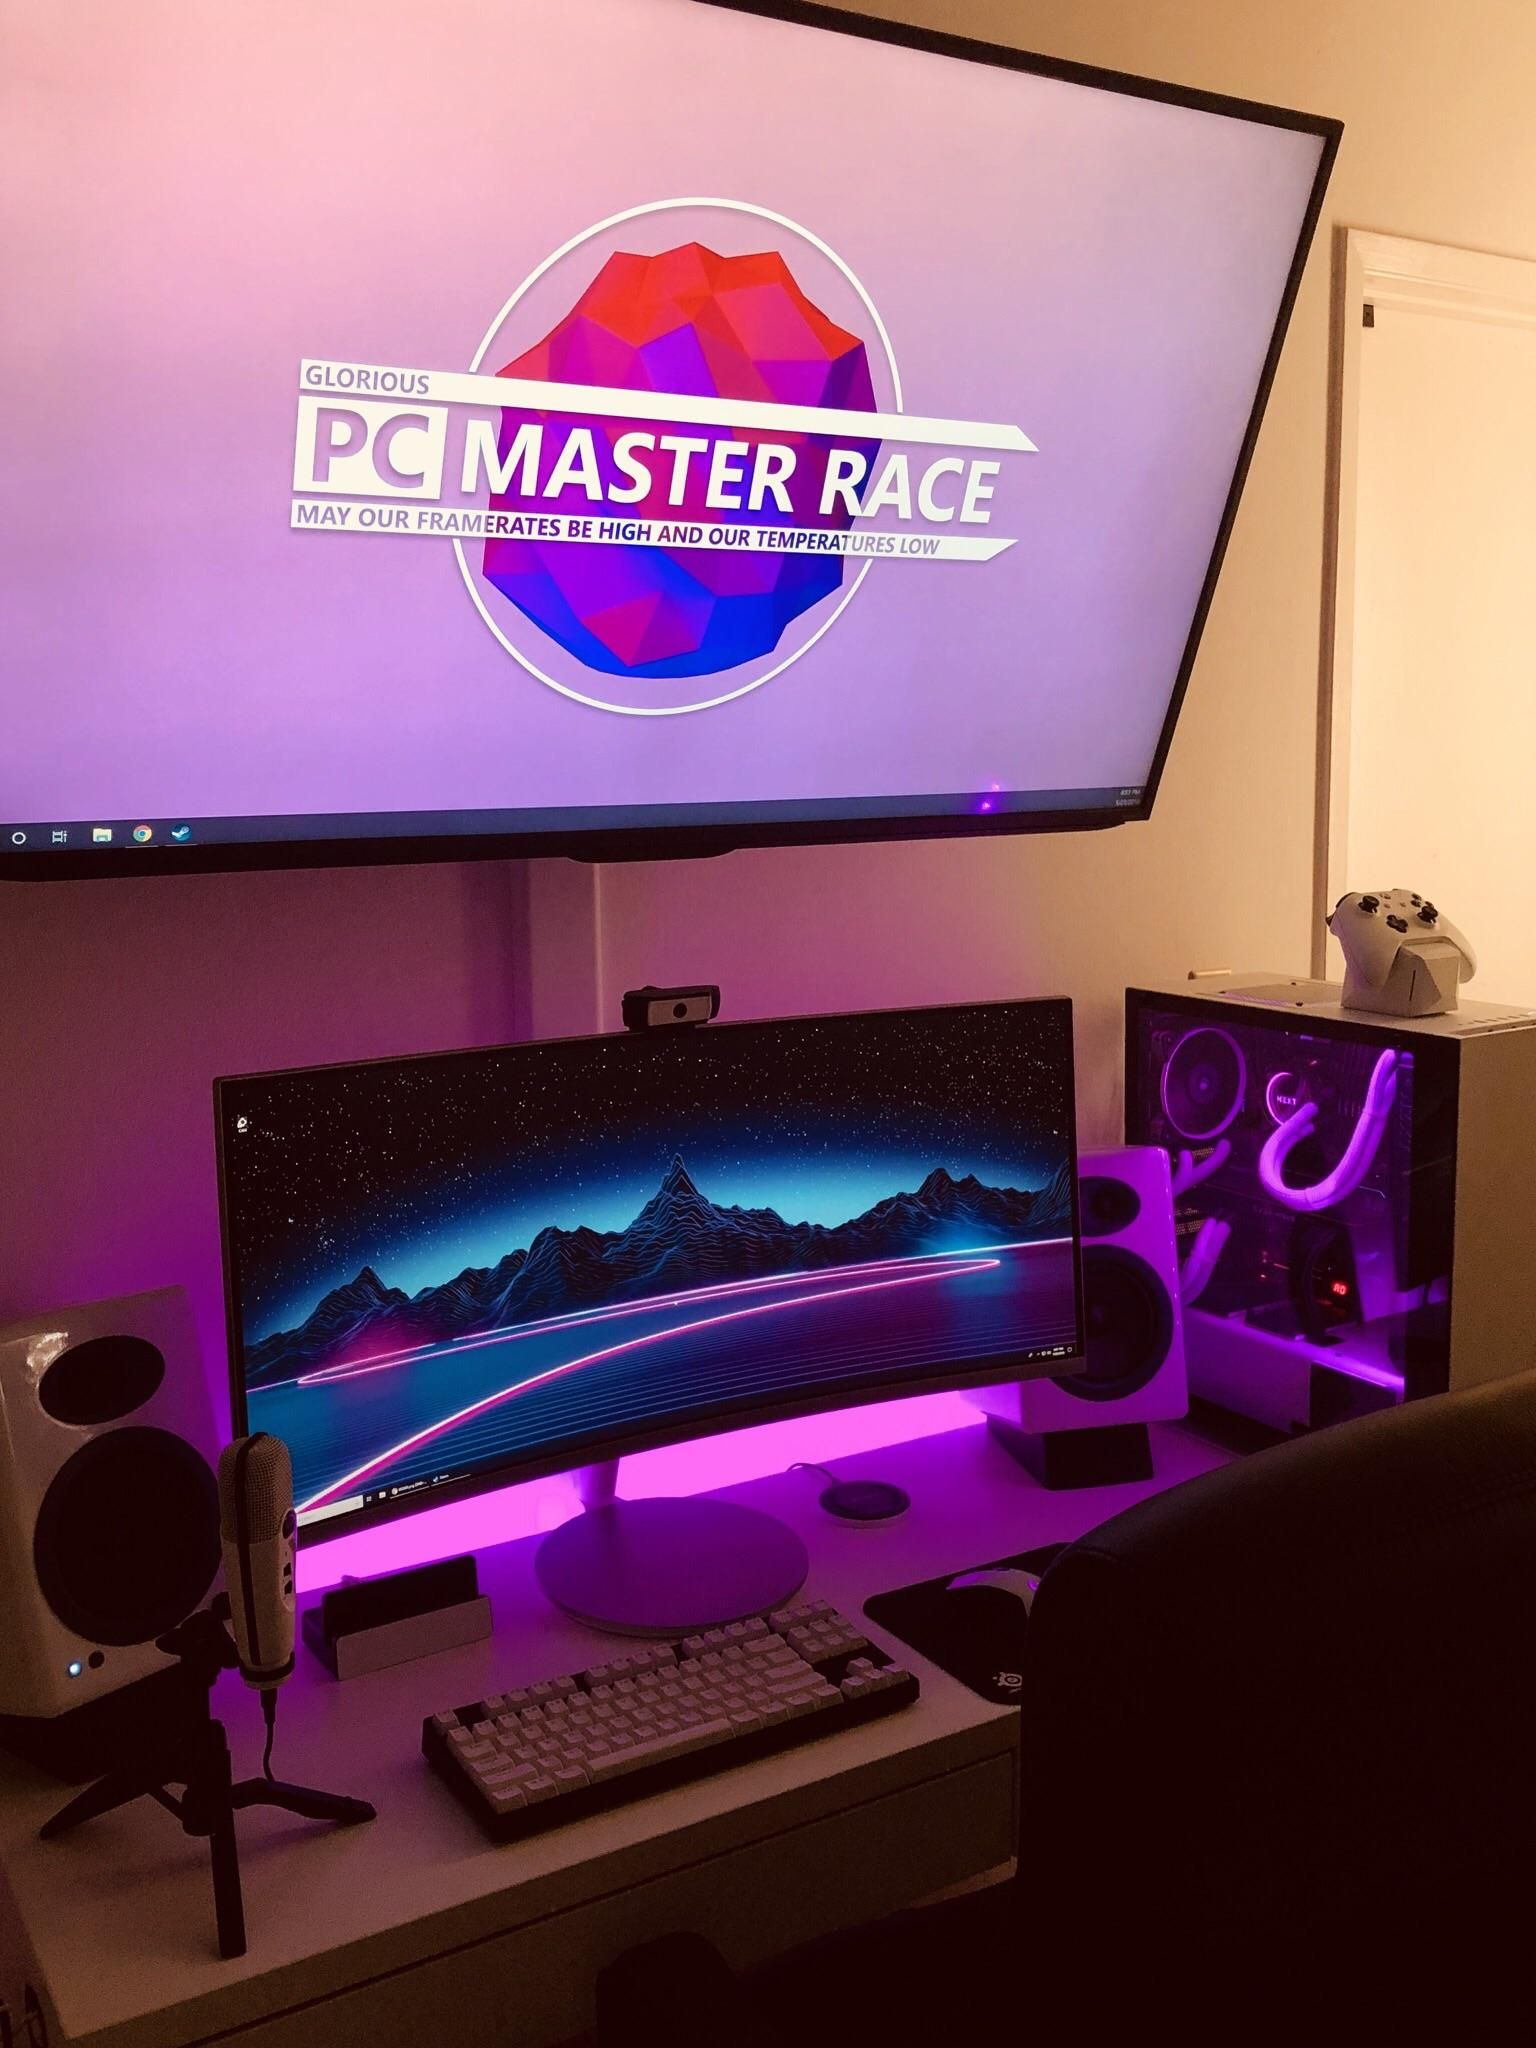 Pin By Ed Grovenor On Manly Office Space | Pinterest | Gaming Setup, PC And  Pc Setup